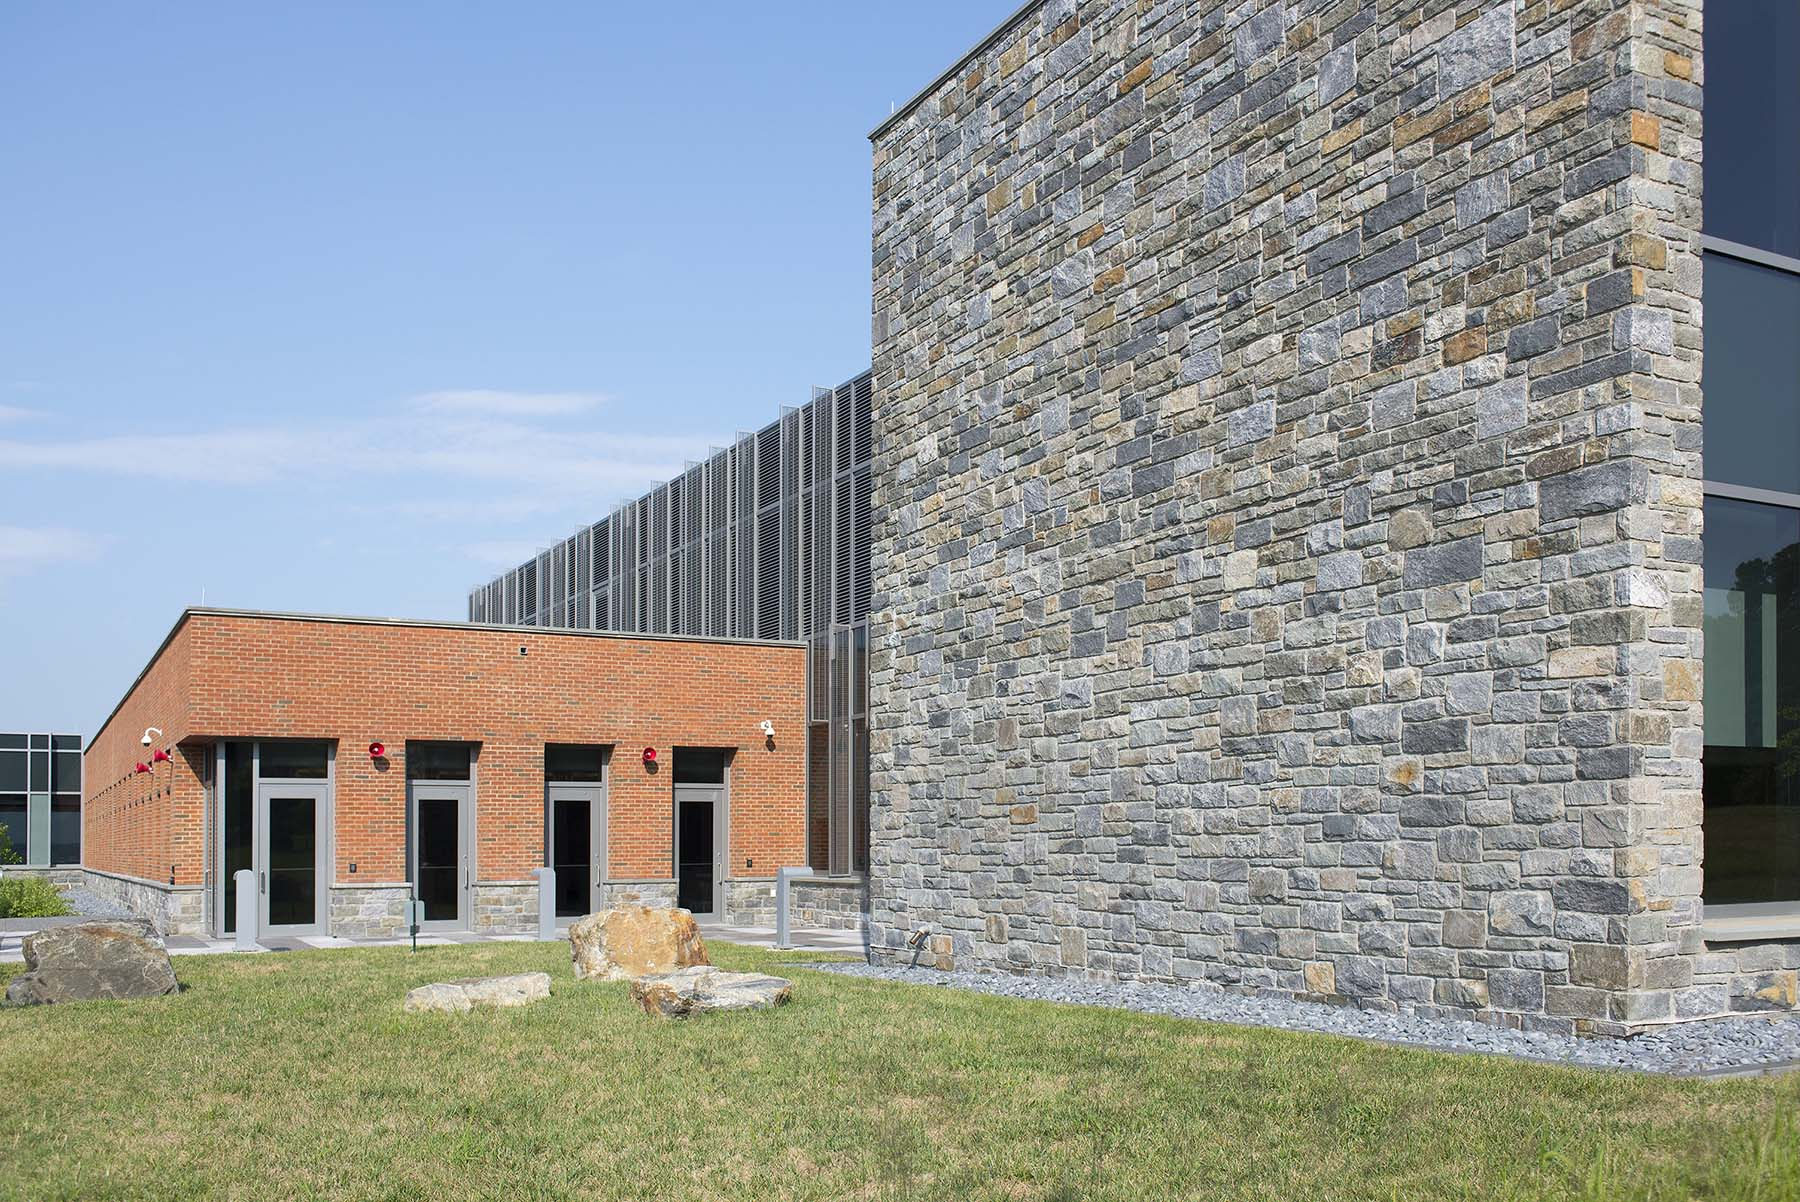 stone veneer wall at USCG Headquarters